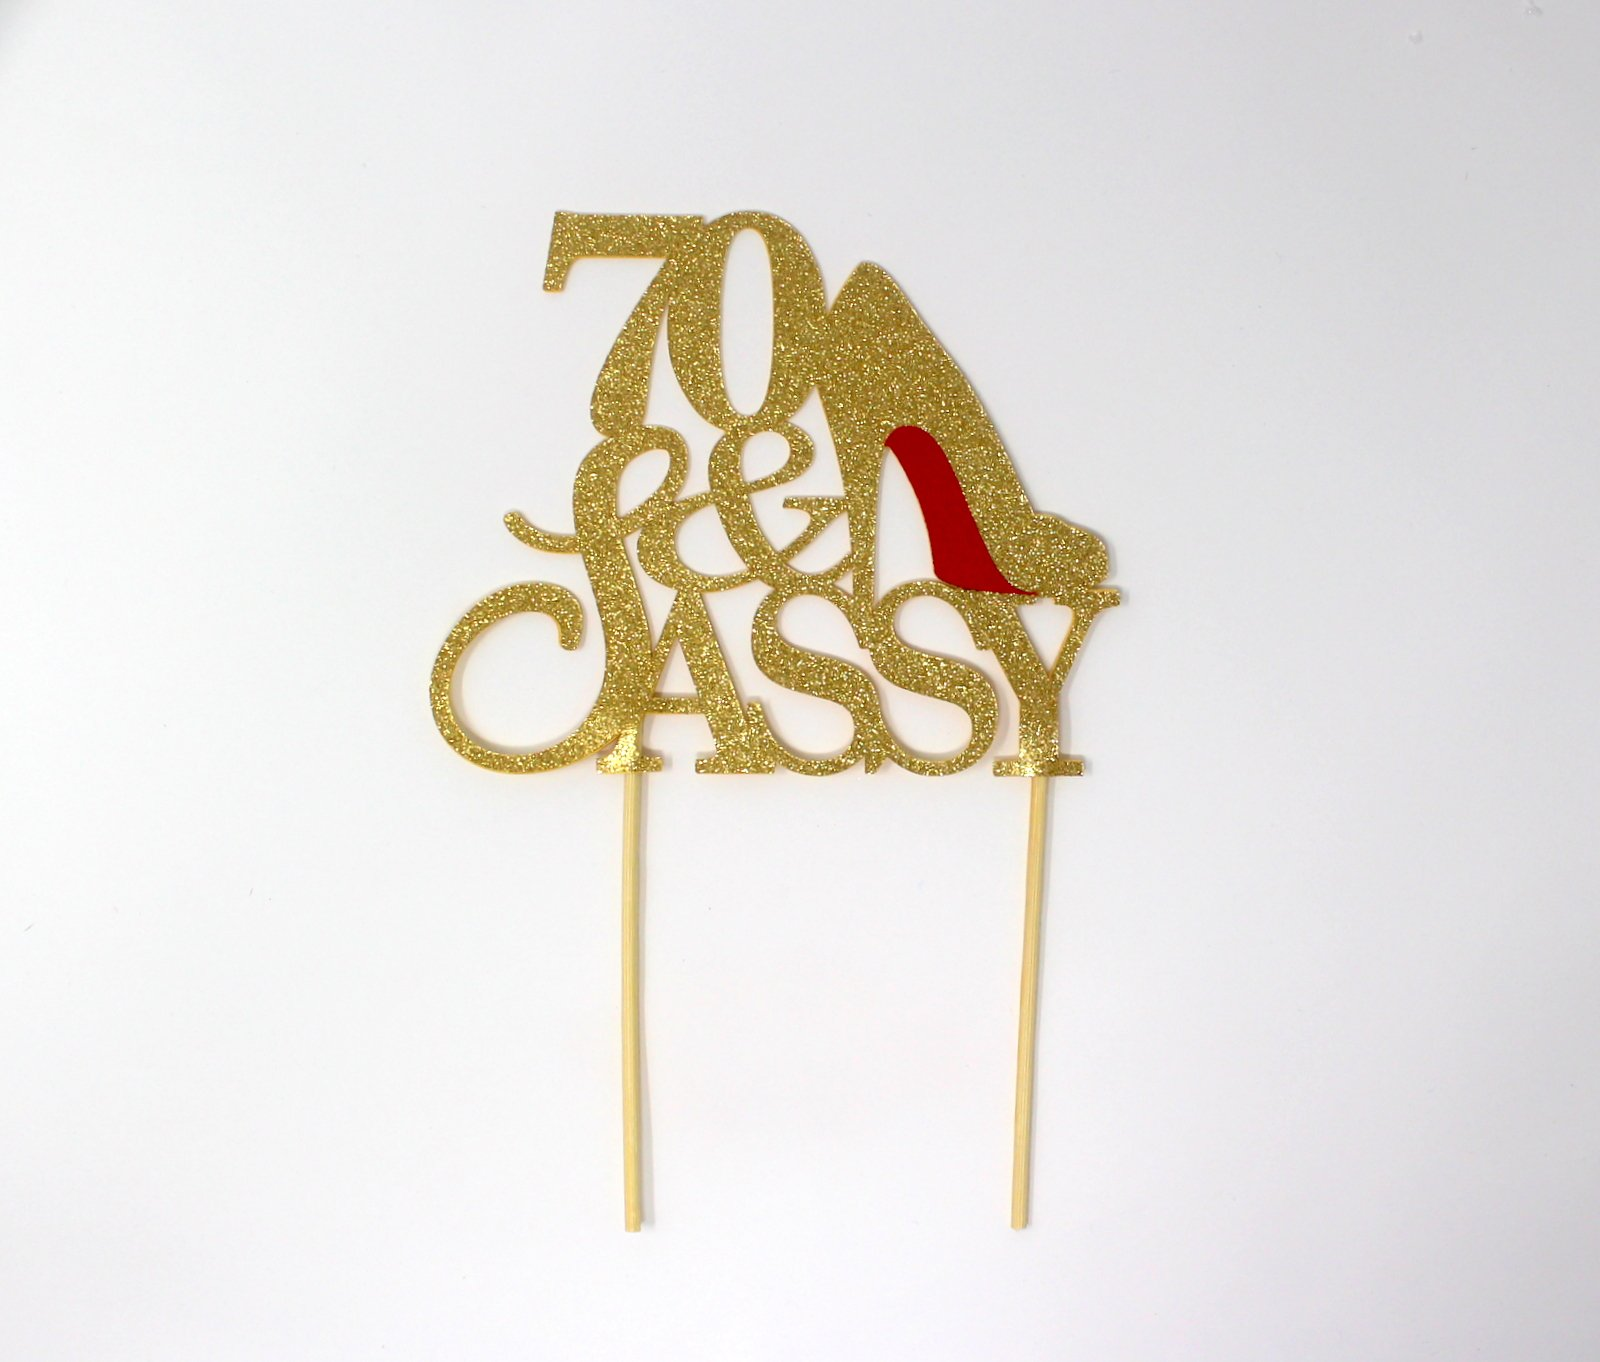 All About Details CAT70SAGOL 70 & Sassy Cake Topper (Gold), 6in wide and 5in tall with 2-pcs of 4in wood skewers by All About Details (Image #1)